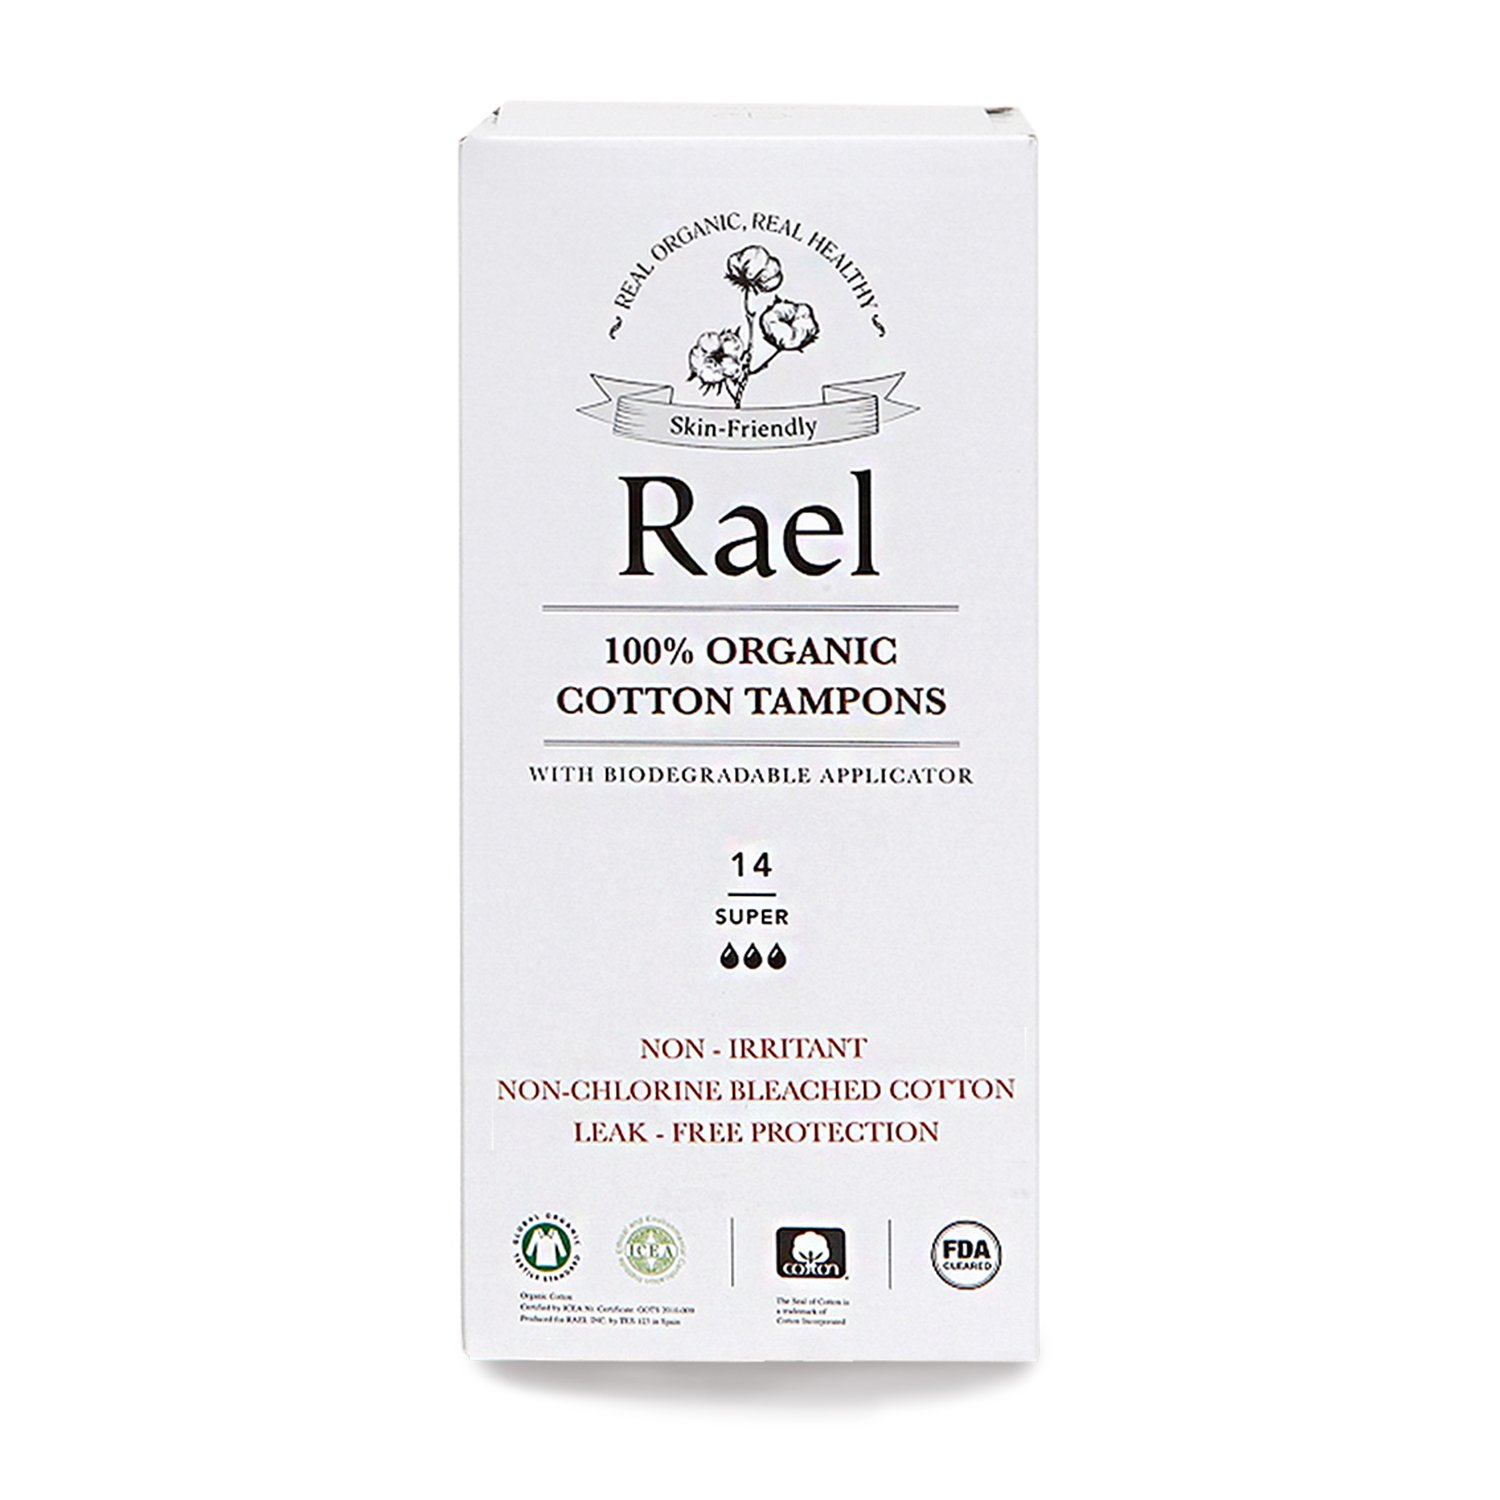 Rael 100% Certified Organic Super Tampons, Non-Chlorine Bleached Tampons with Biodegradable Cardboard Applicator(28 Total) (2 Packs)